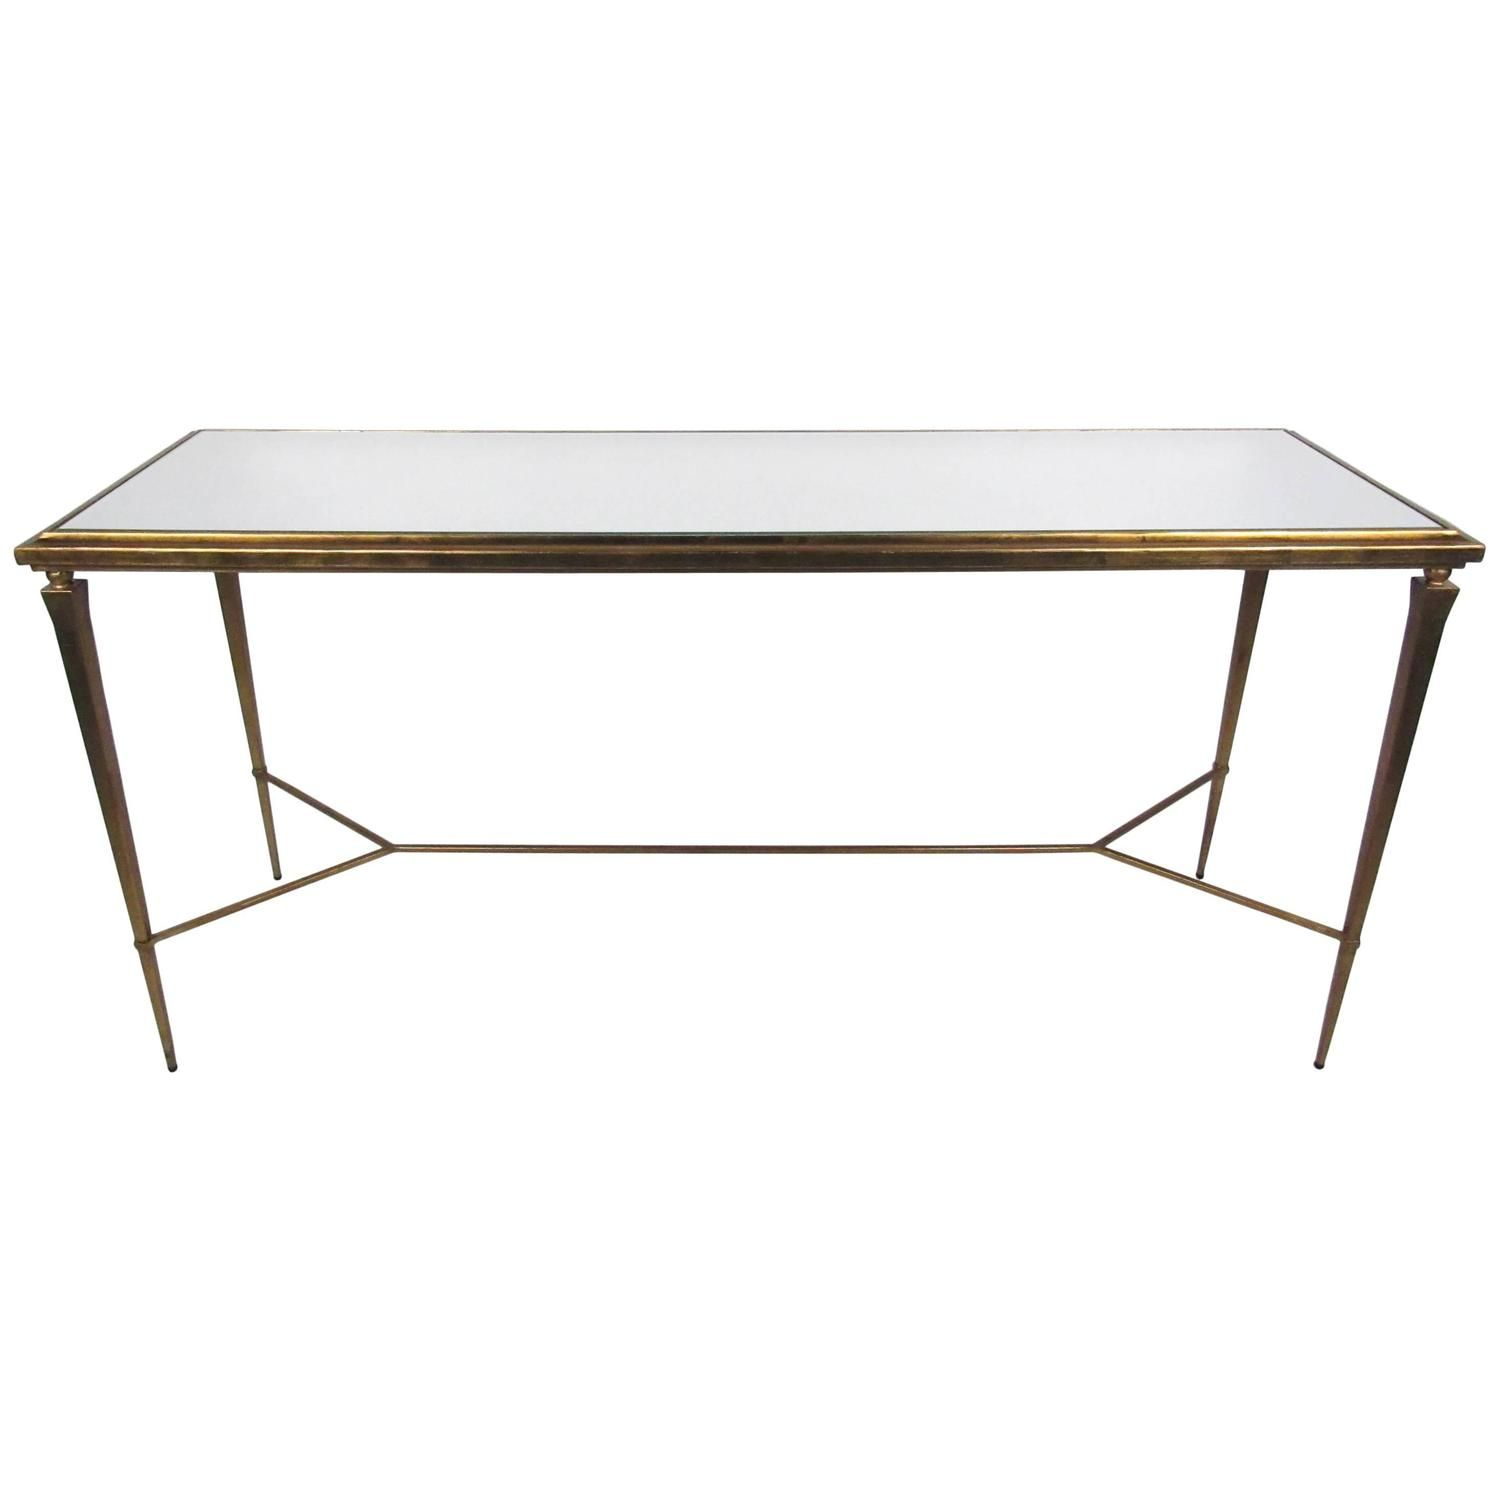 mid century gold leaf style mirrored console table furniture rh pinterest com